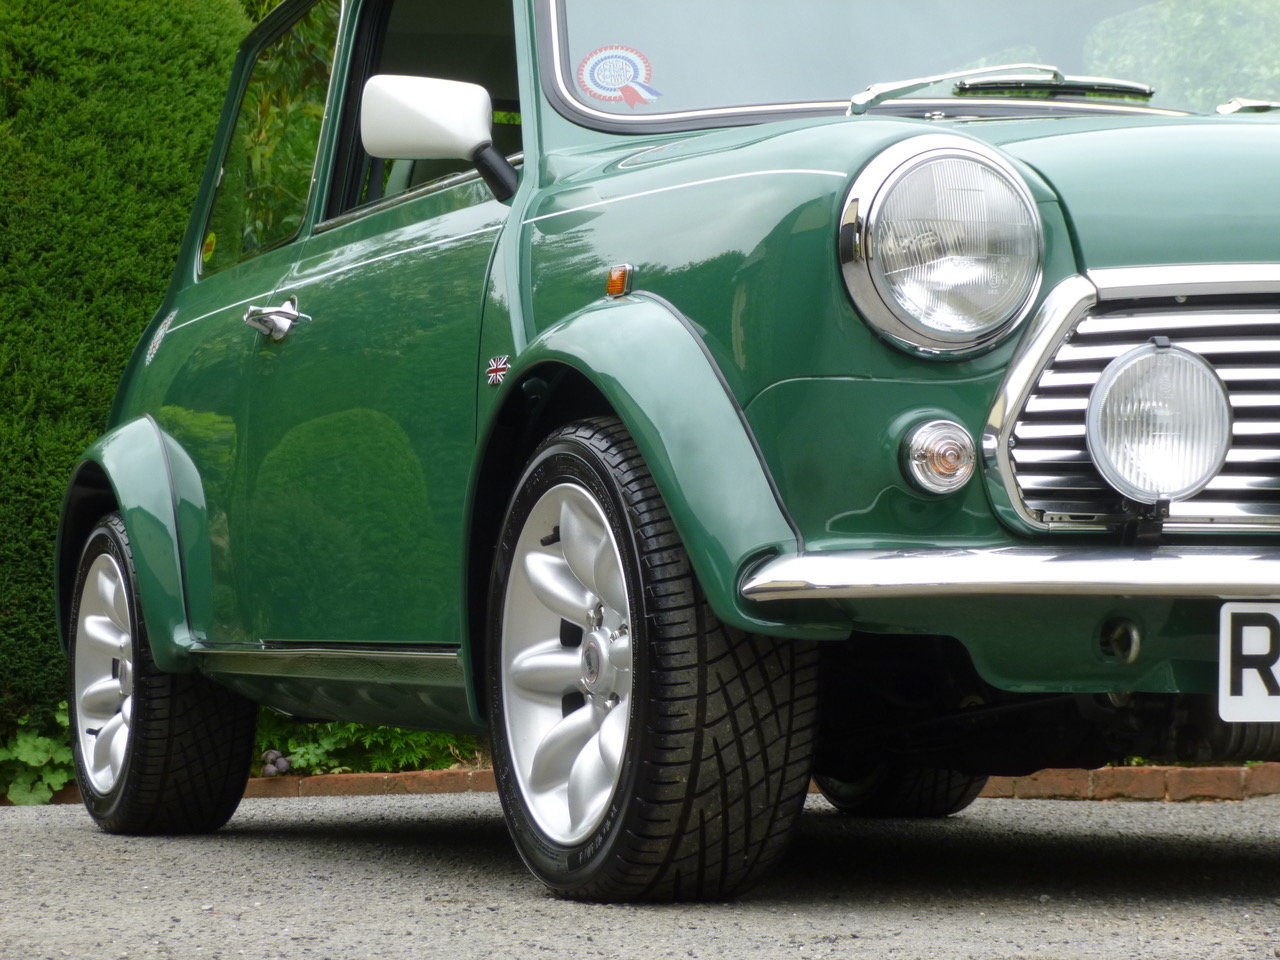 1997 Outstanding Mini John Cooper S Works On Just 19820 Miles. SOLD (picture 5 of 25)